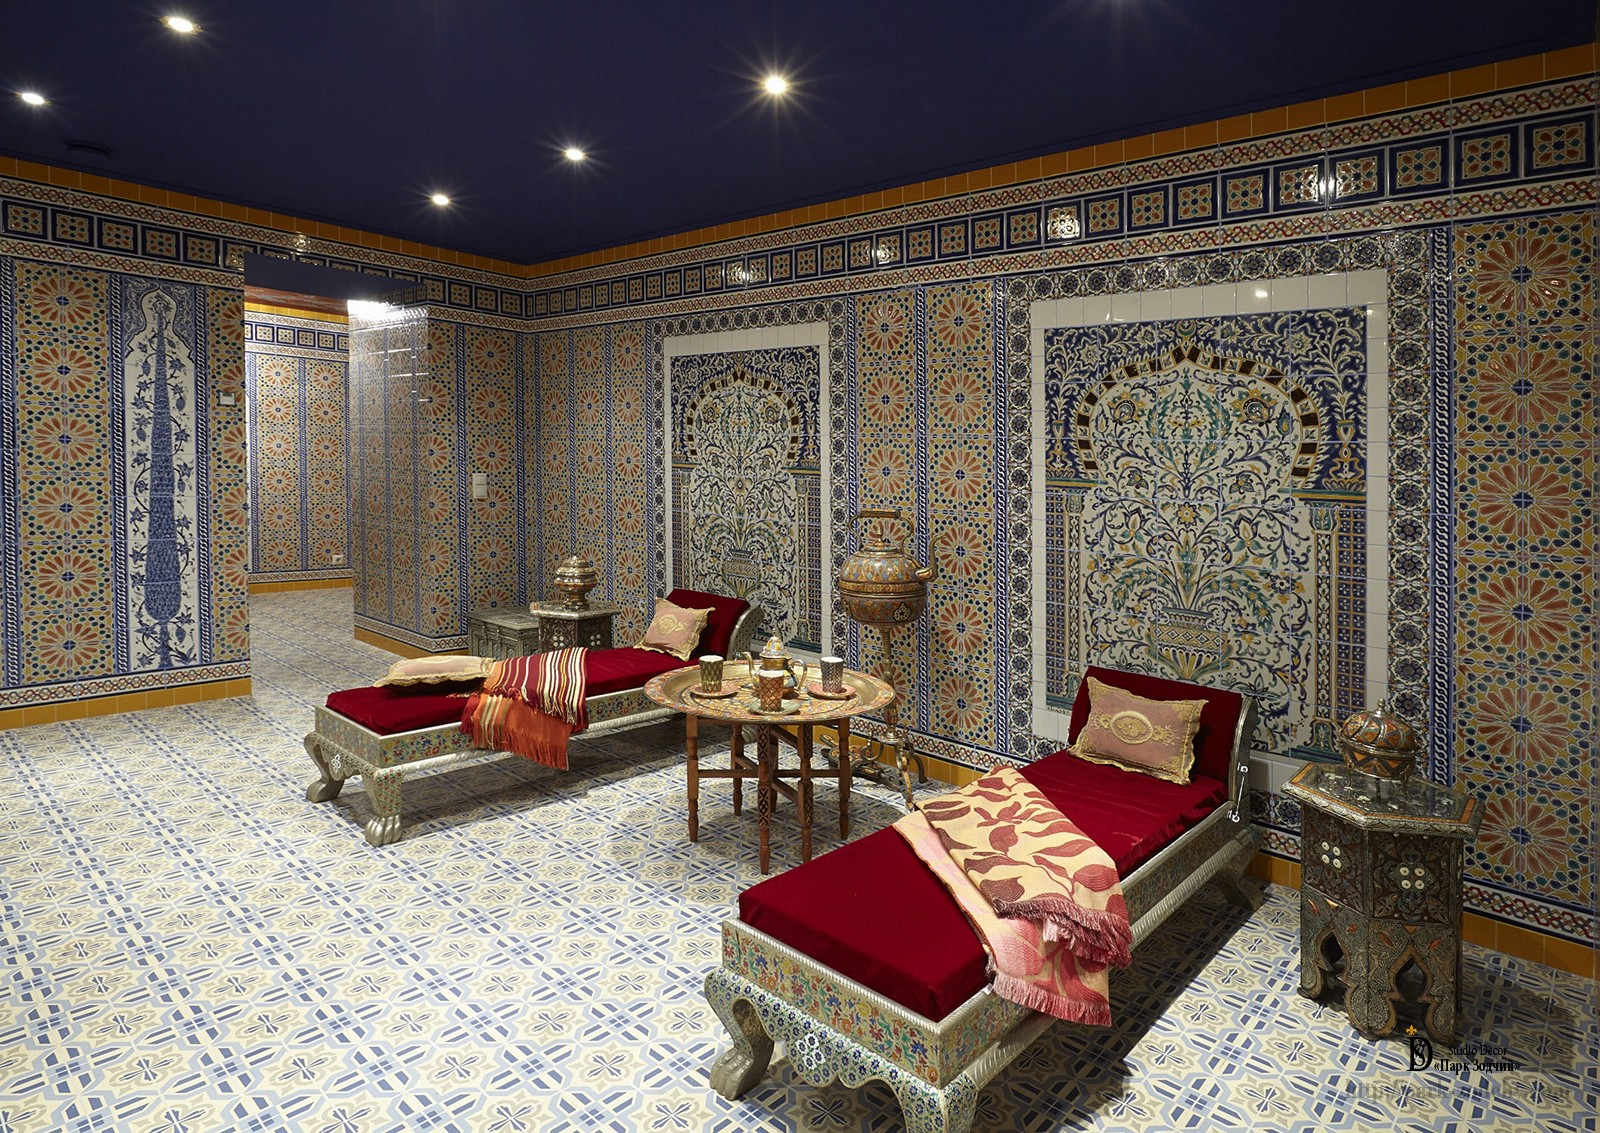 Decorative tiles in the interior of the hamam